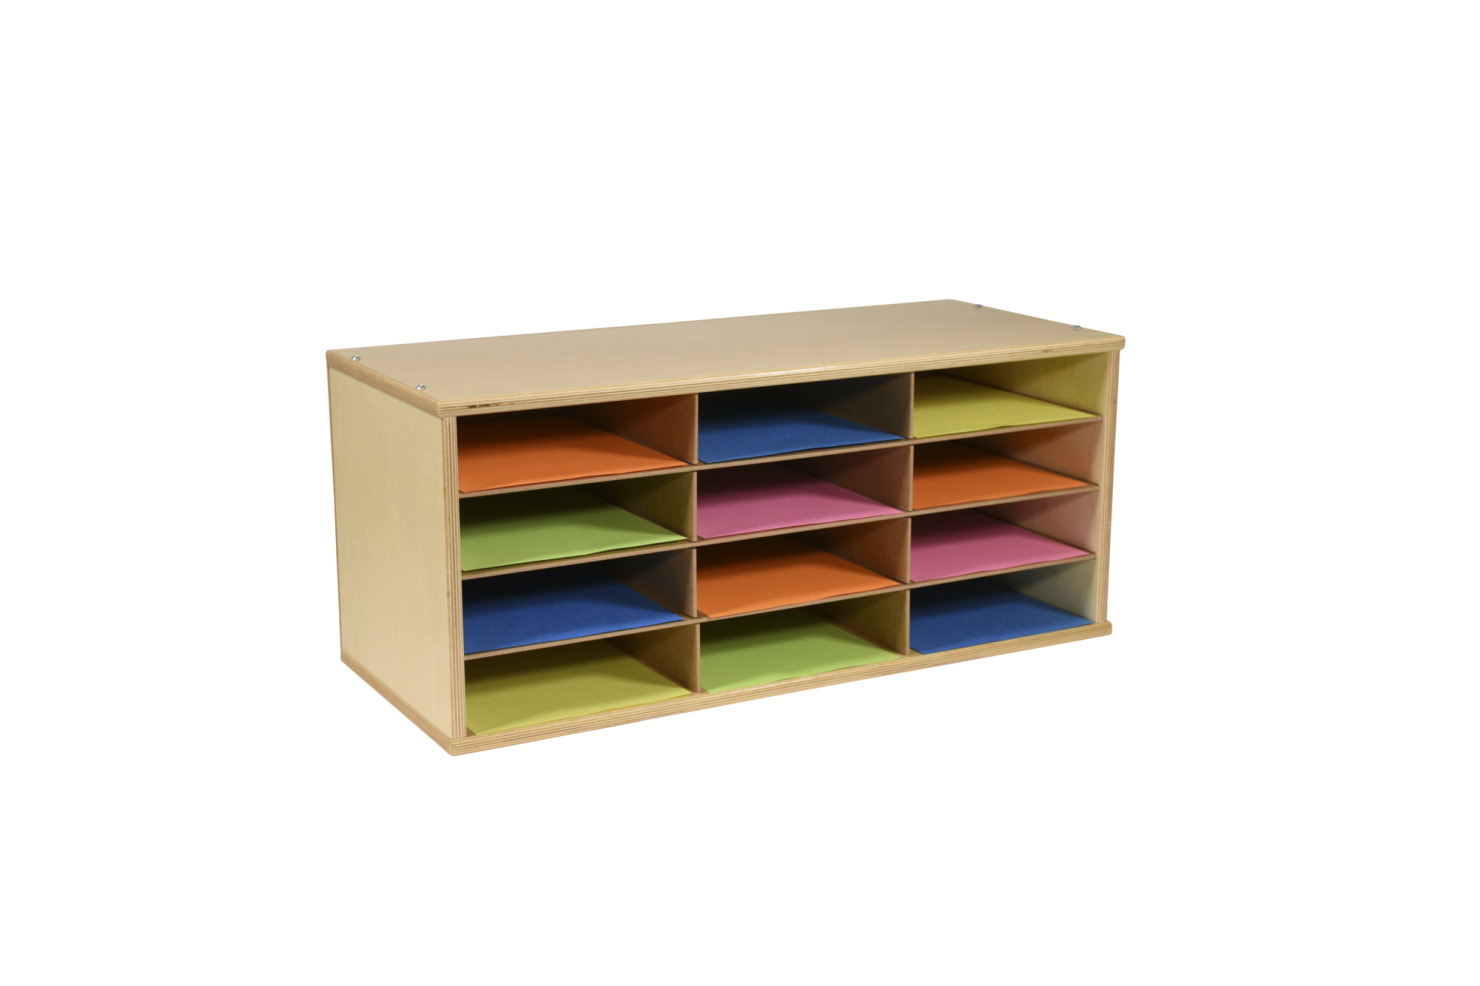 Classroom Select Storage Organizer, 12 Shelves, 29 x 12 x 12-1/2 Inches